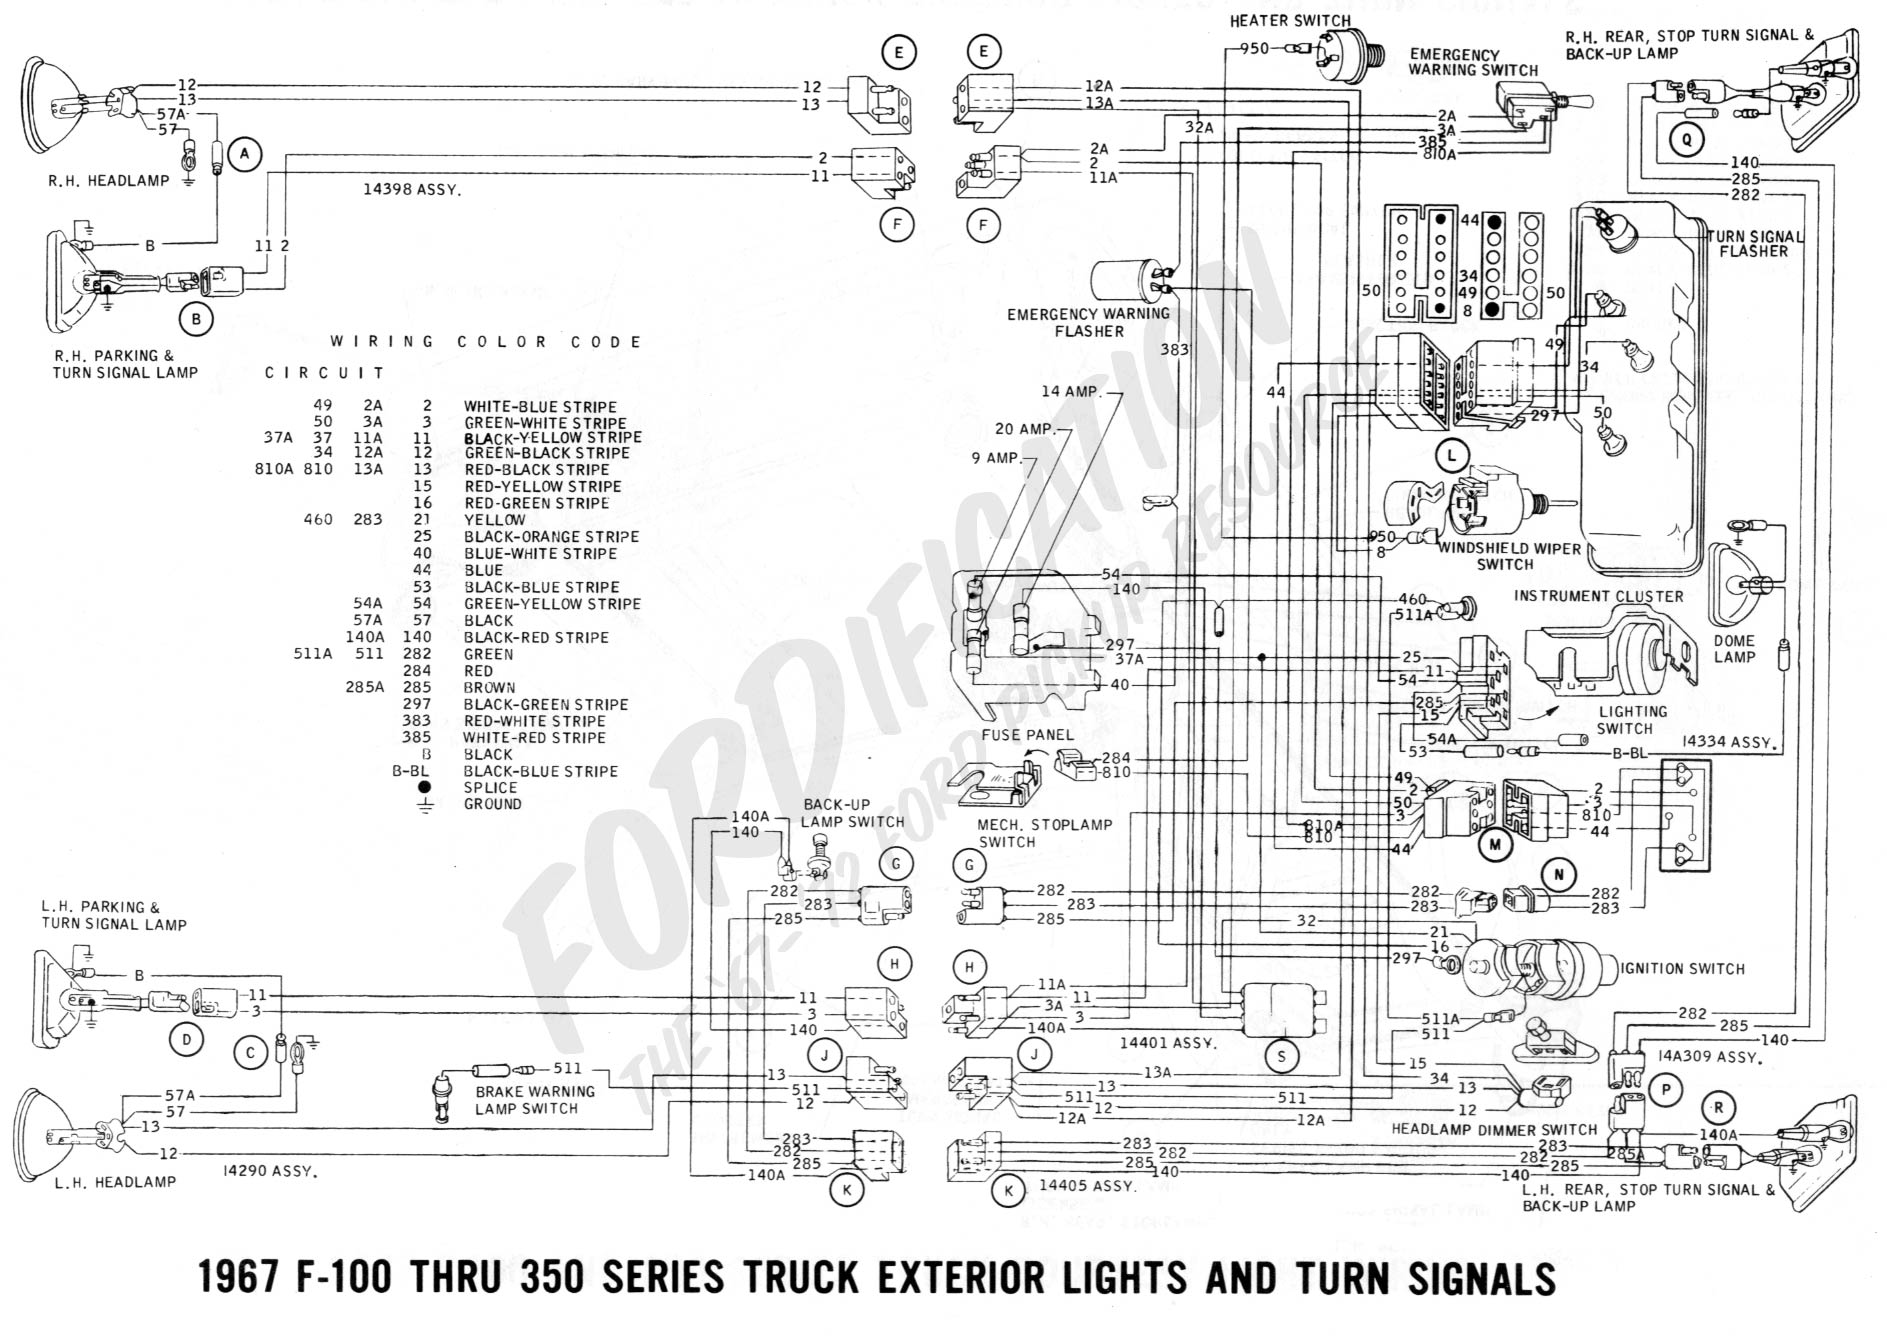 Ford F 250 Turn Signal Wiring Diagram Data Wiring Schema 1968 Mustang  Starter Solenoid Location 66